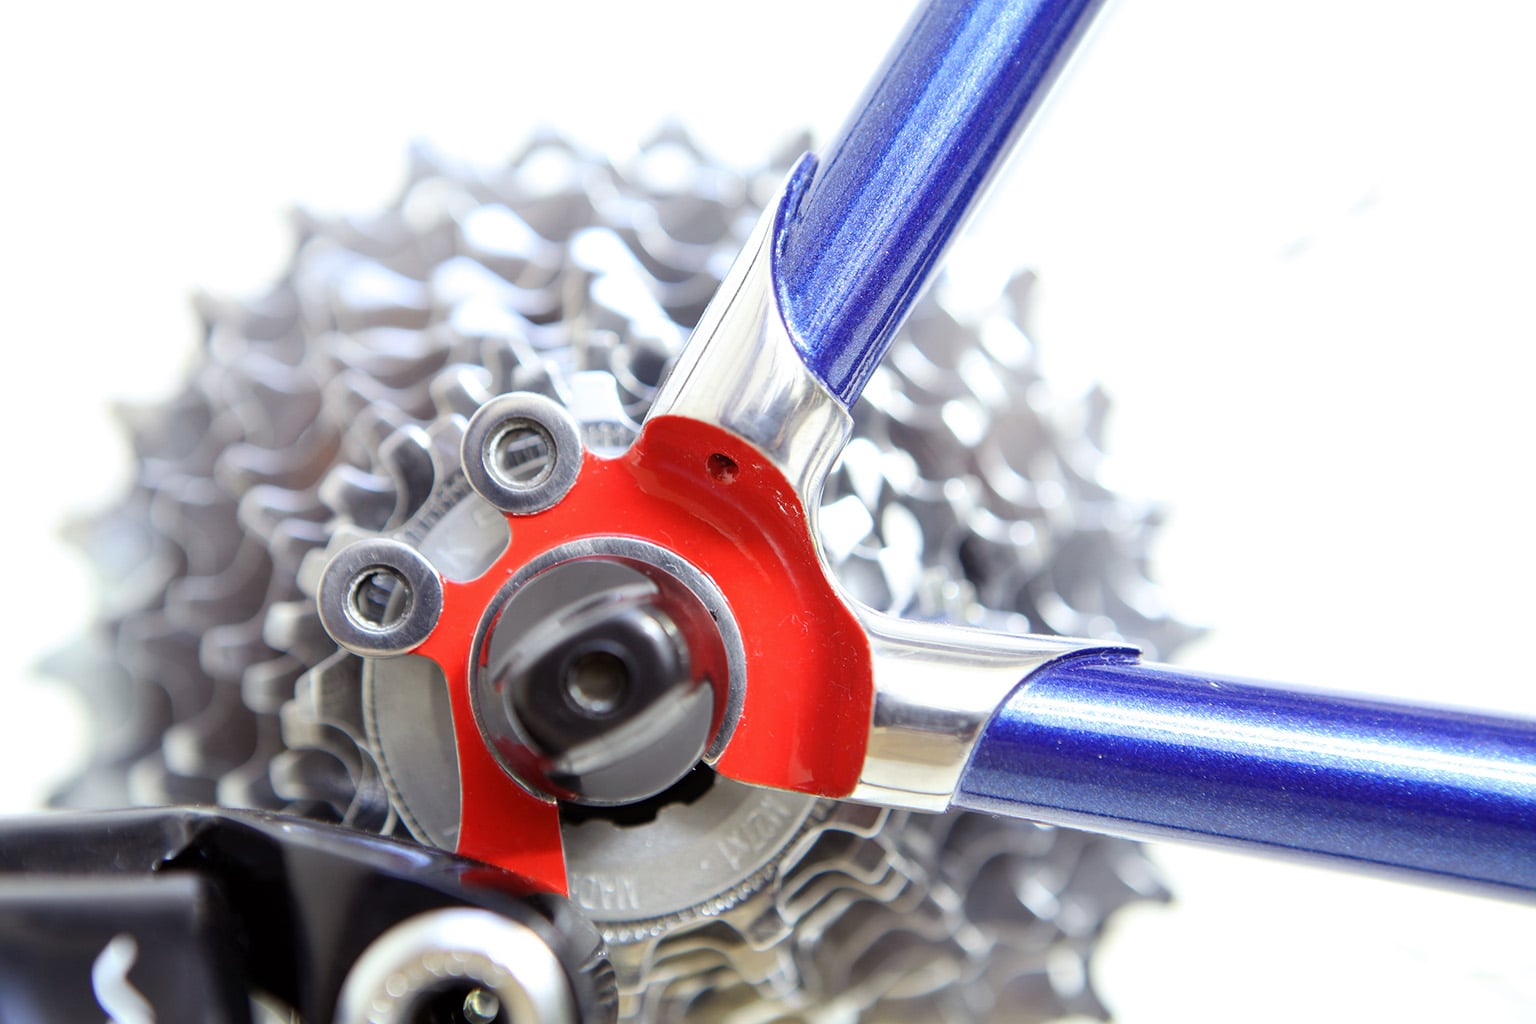 2. Cycle Revolution, Design Museum. 50% off with National Art Pass - Polished Stainless Dropouts, Hartley Cycles